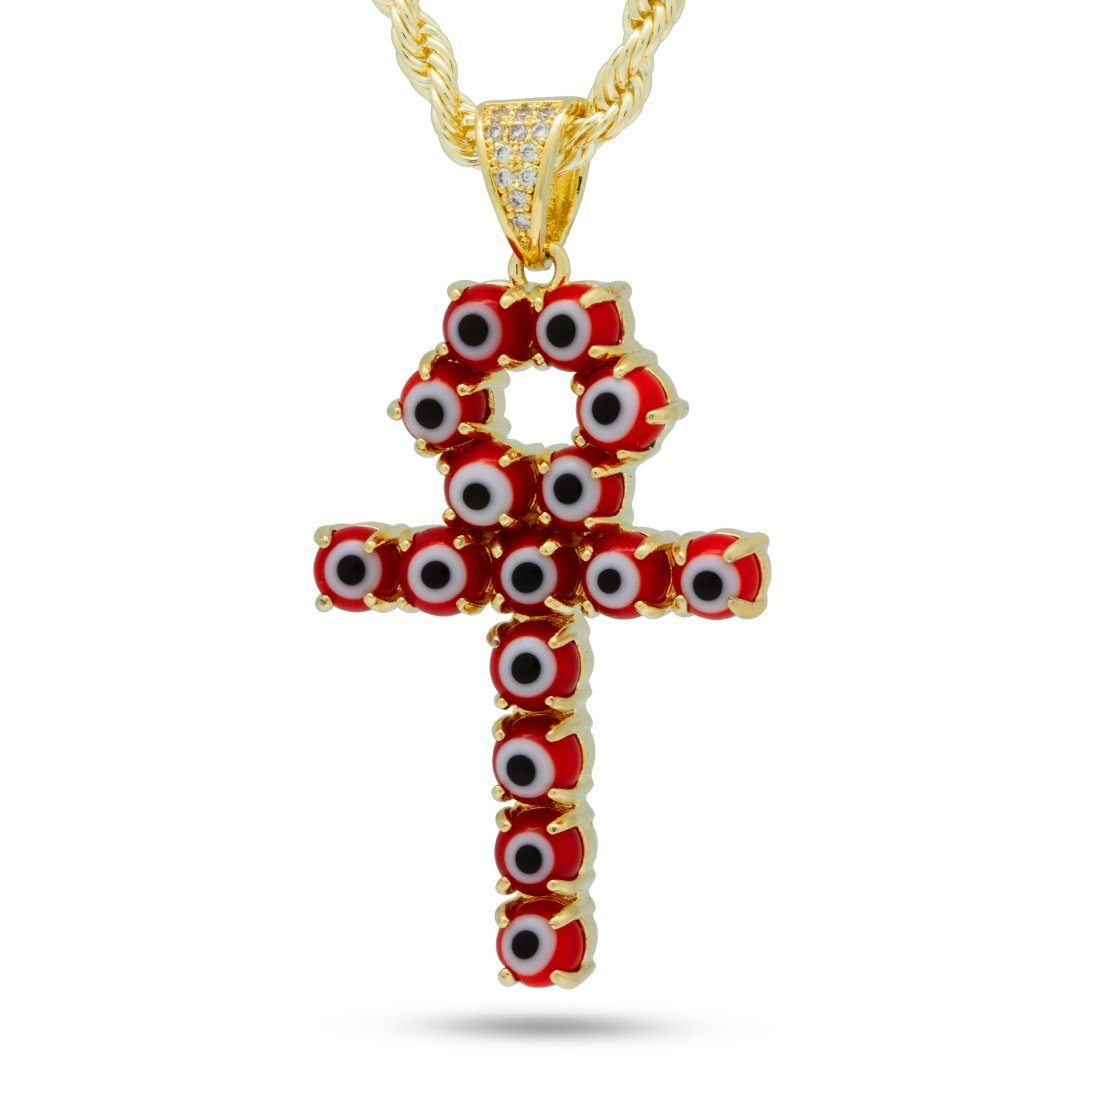 Image of The Red Evil Eye Ankh Cross